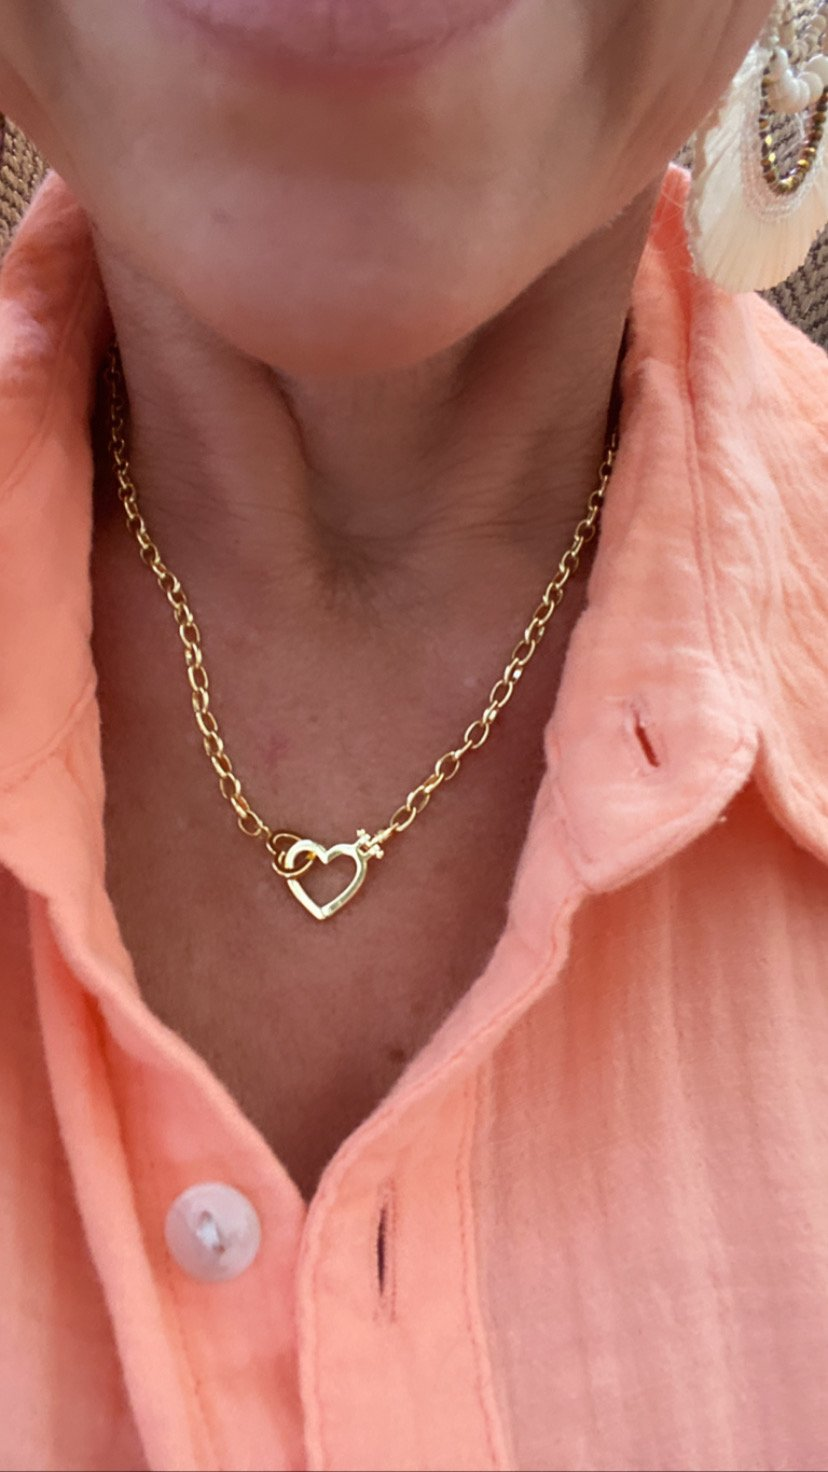 Gorjana necklace my top 5 right now